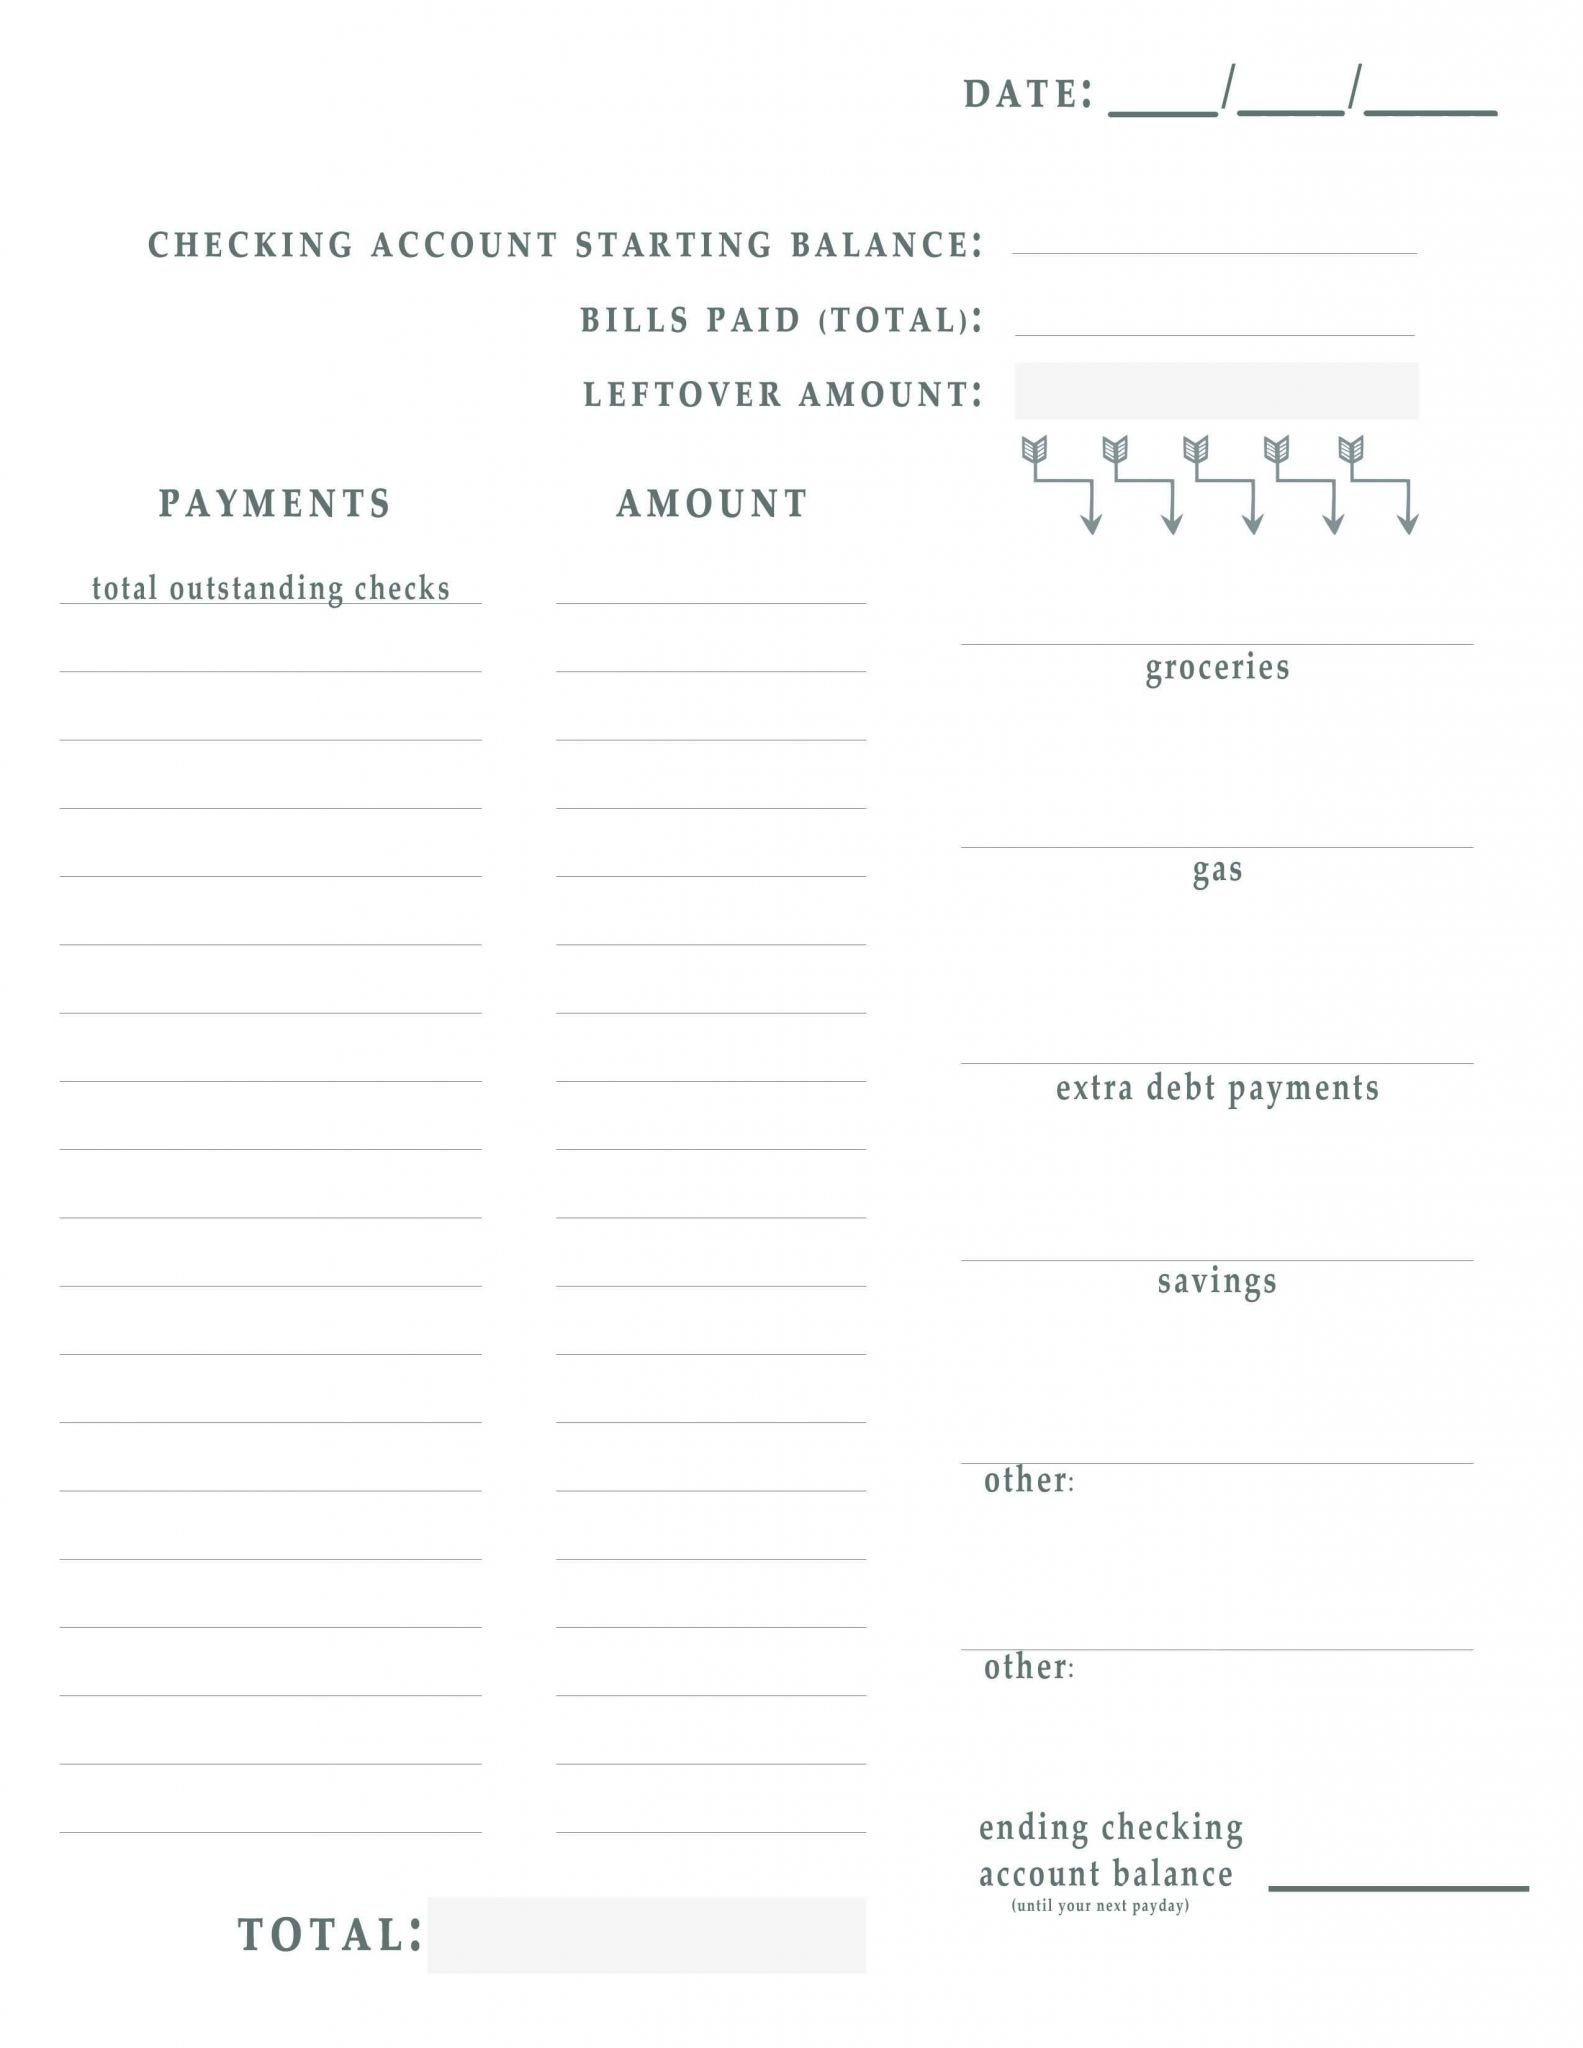 Free Printable Budget Binder Worksheets Along with Bill Pay Worksheet Free Printable